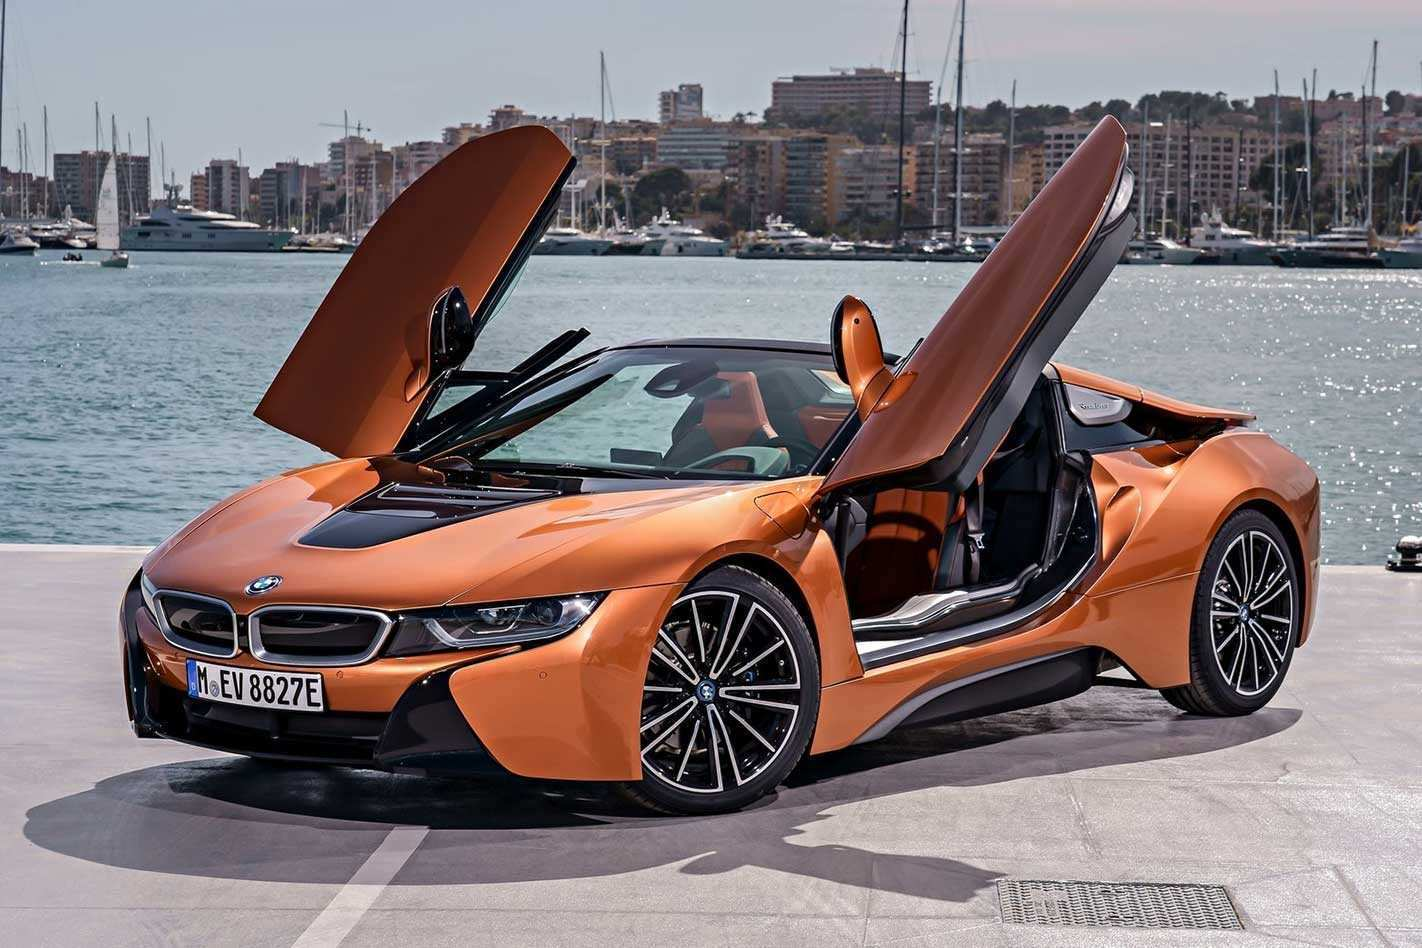 85 All New 2019 Bmw I8 Roadster Photos by 2019 Bmw I8 Roadster